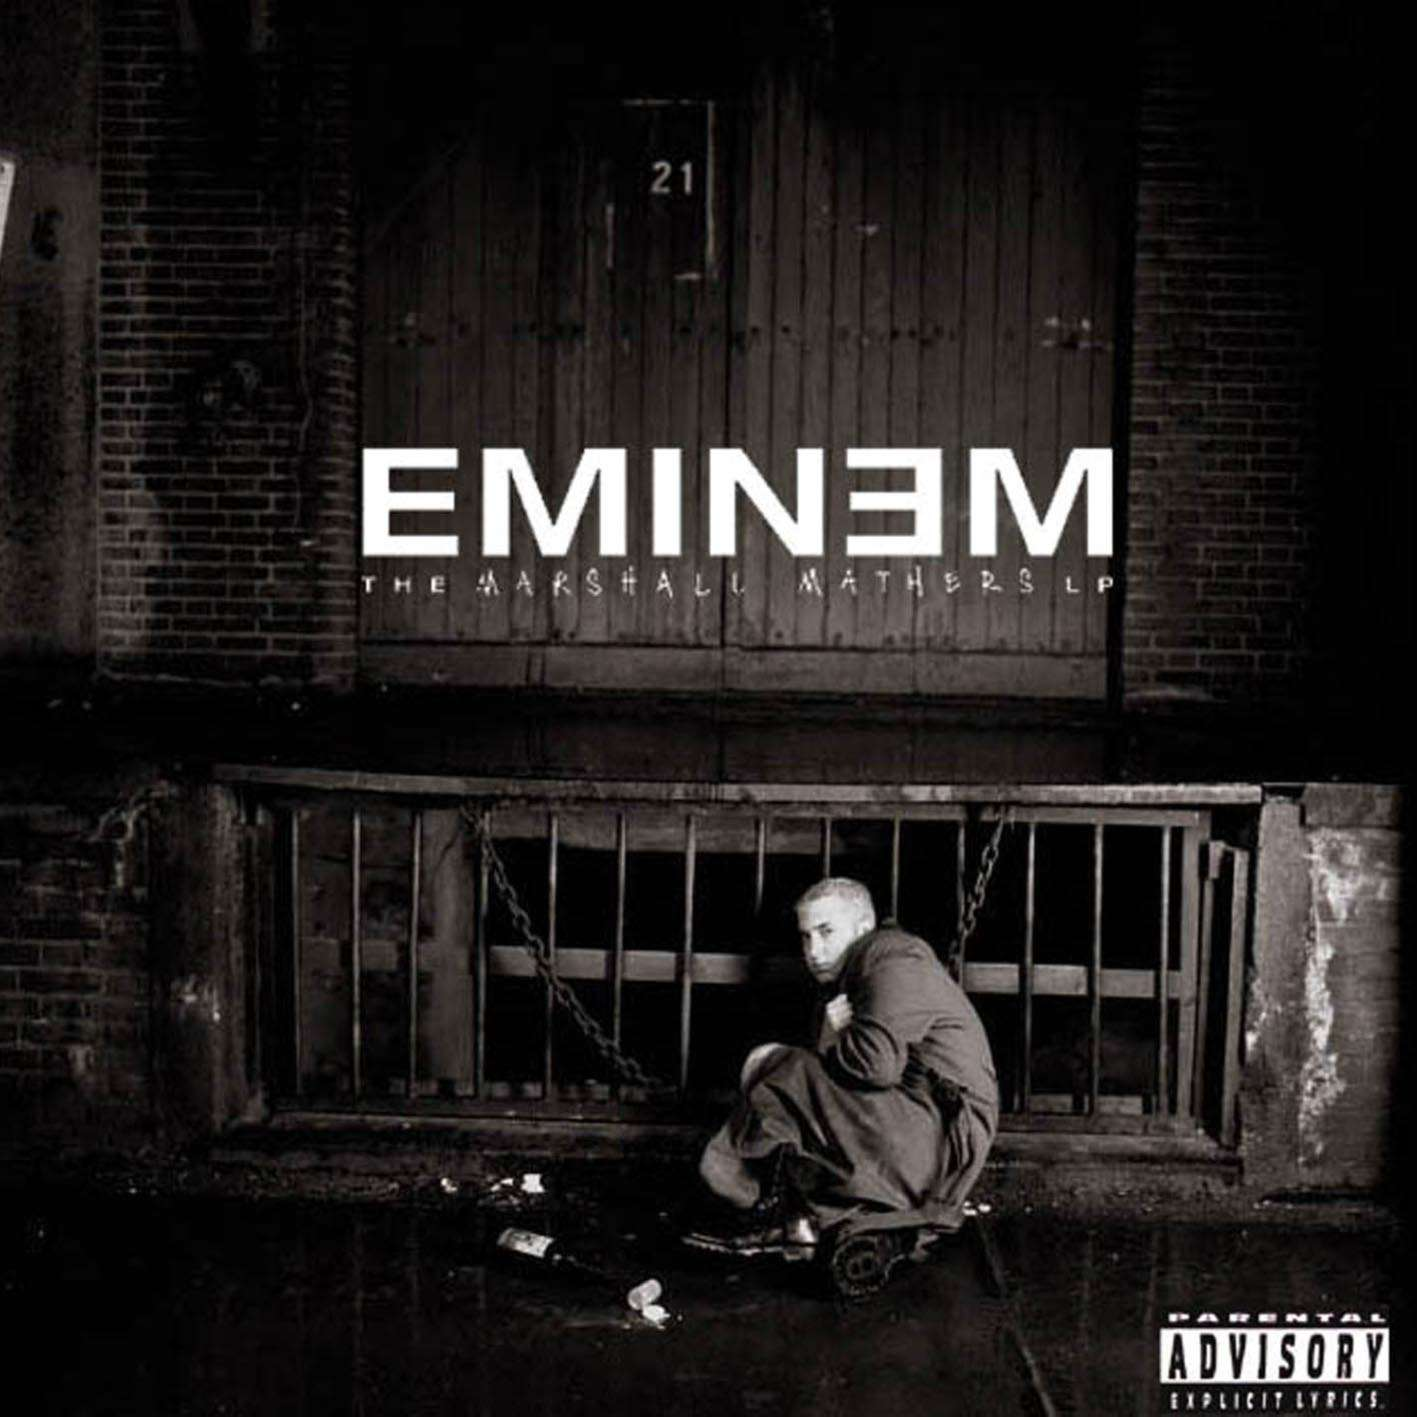 the_marshall_mathers_lp_is.jpg